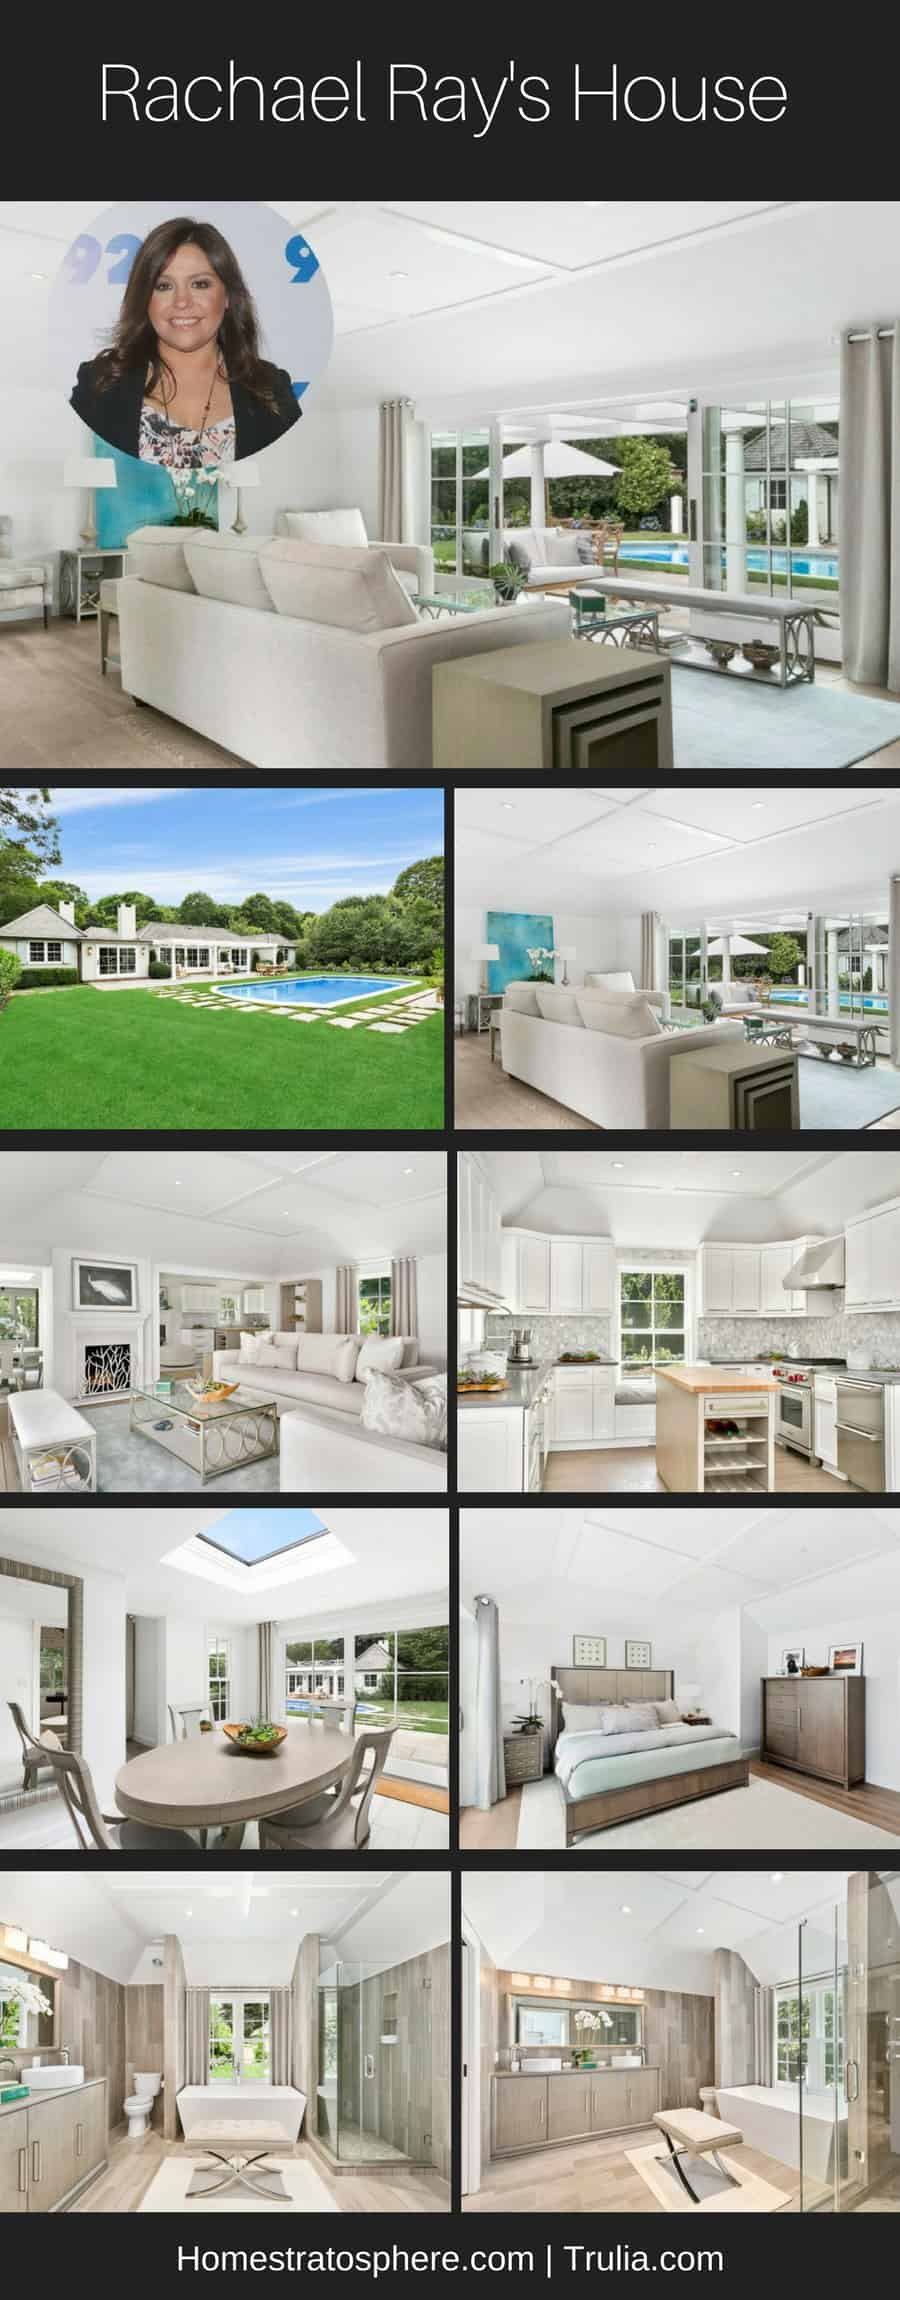 Rachael Ray's Hamptons Home (for sale)